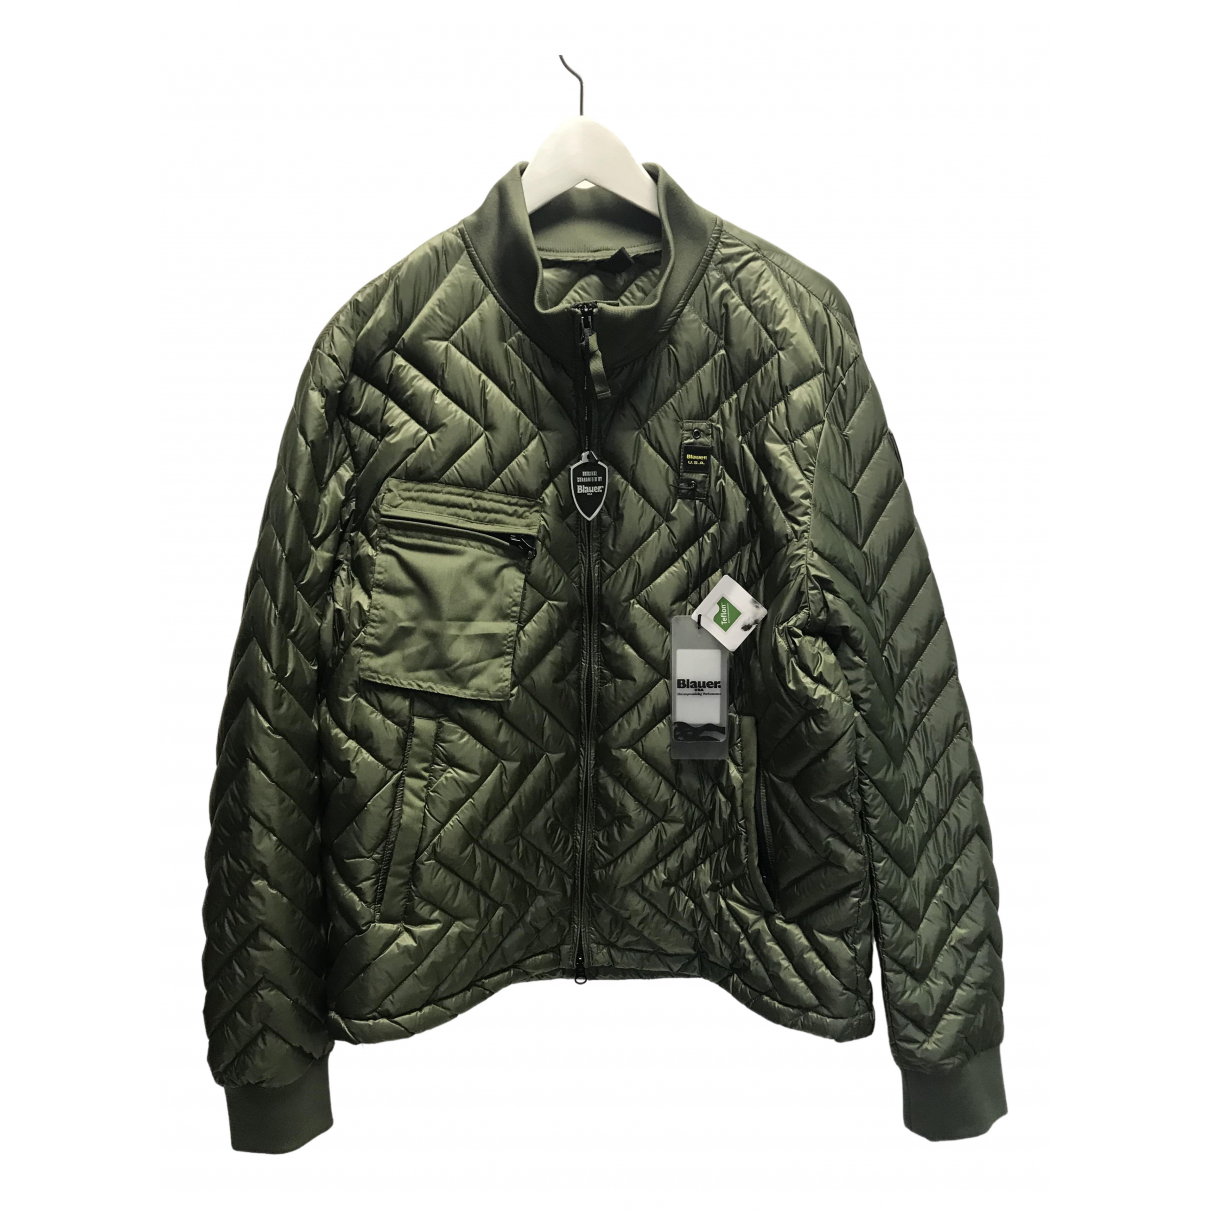 Blauer \N Green jacket  for Men XXL International